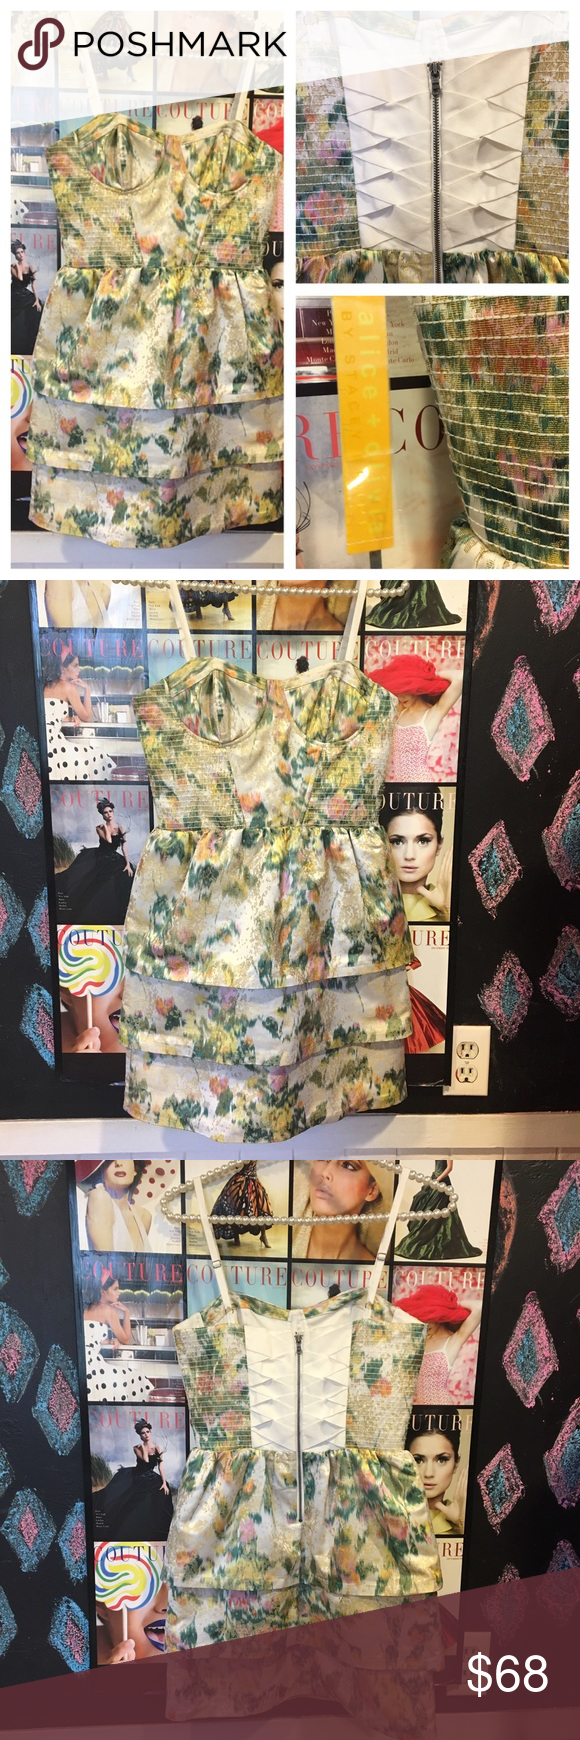 """Nwts Alice + Olivia corset spring DRESS sz0😍 Brand new with tags attached Alice + Olivia spring flower corset fun dress. Size 0  chest is 30-32 has stretch on sides waist is 26"""" perfect for spring. Alice + Olivia Dresses"""